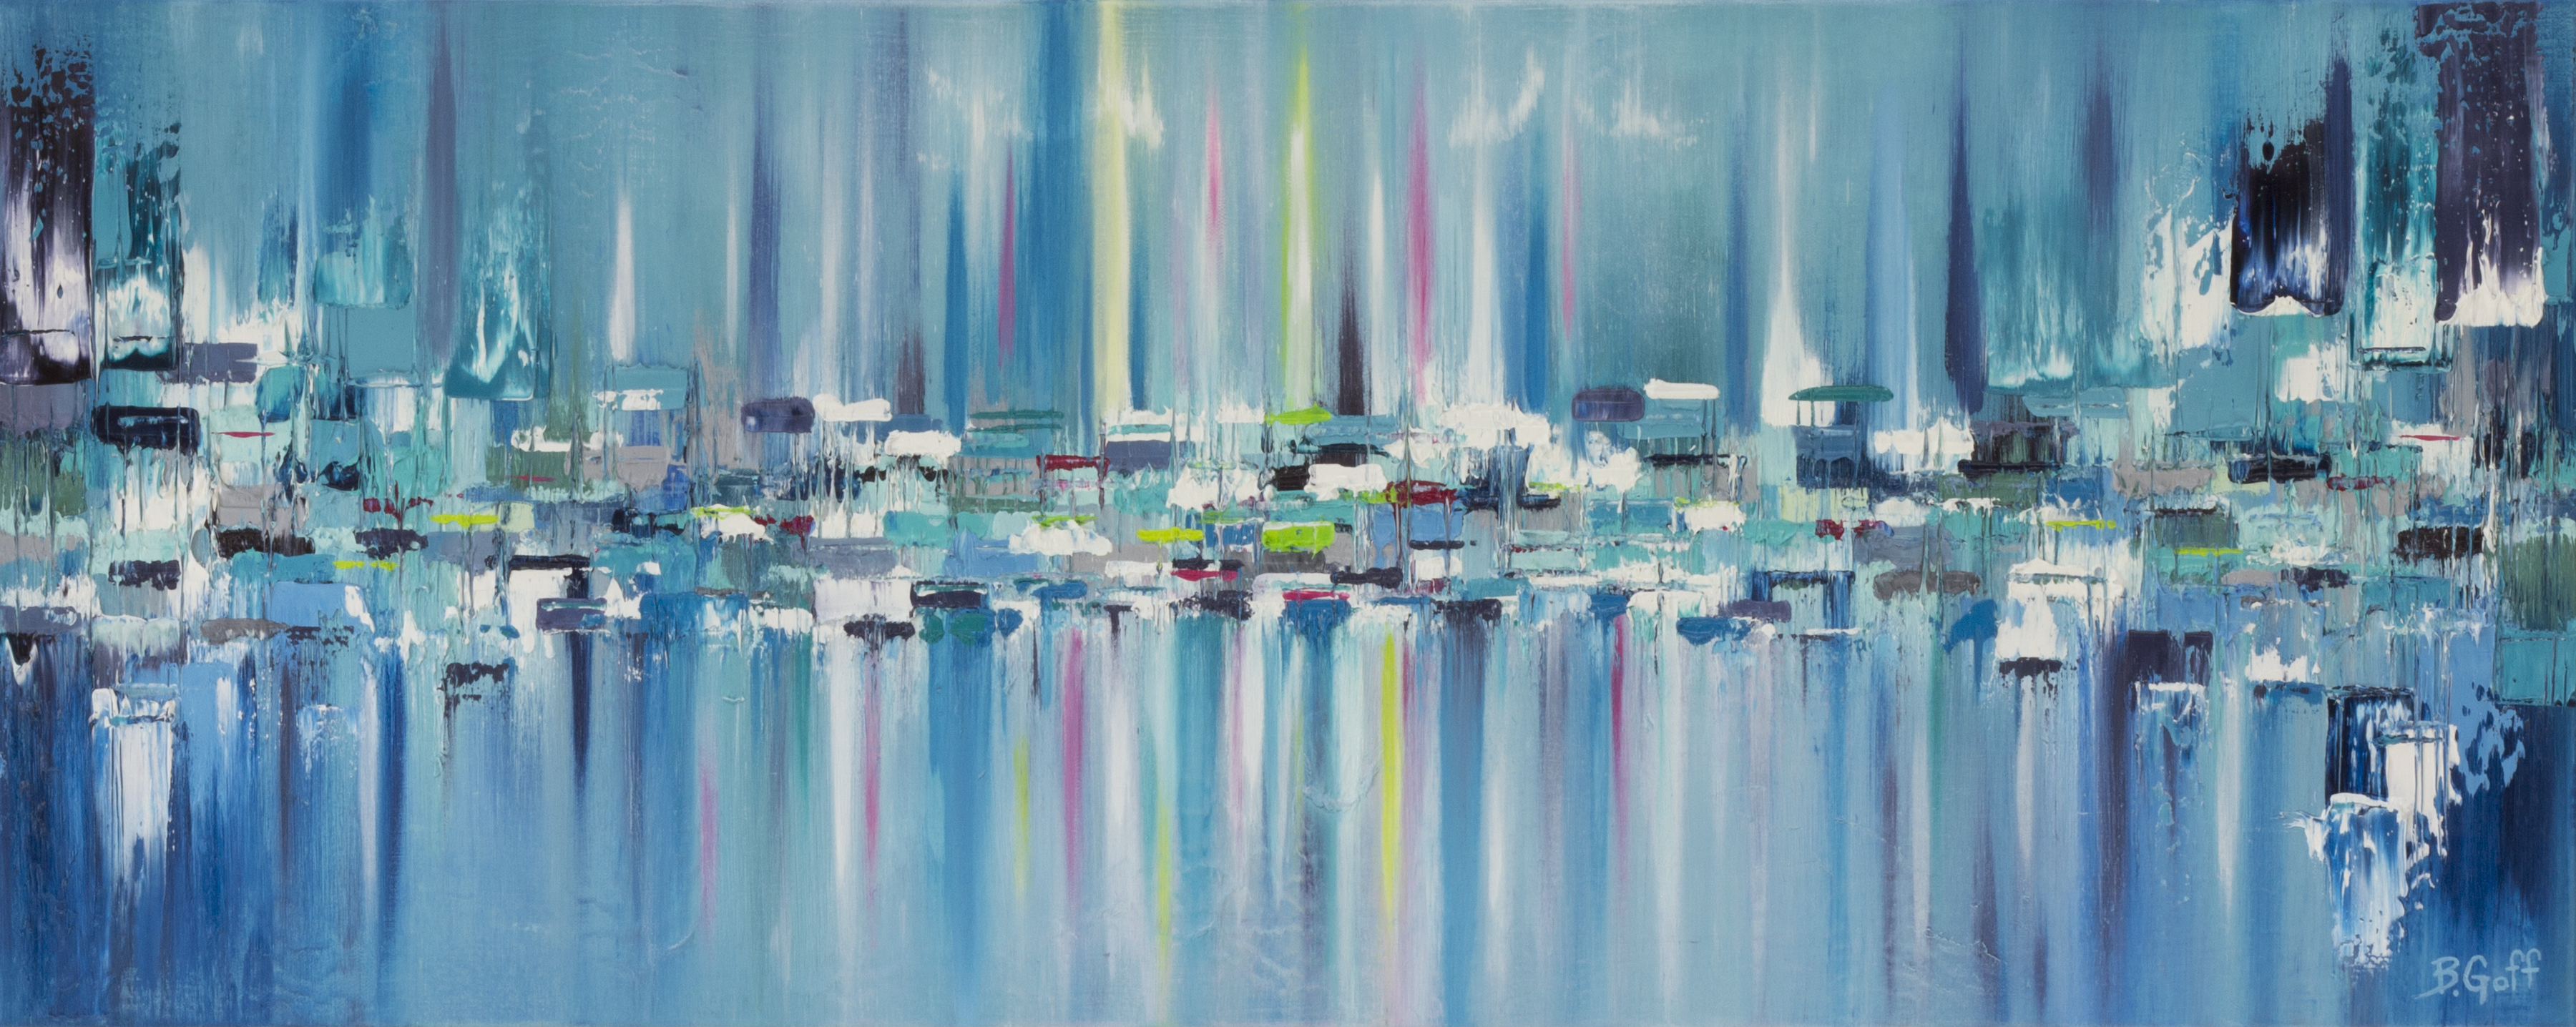 Northern Lights Series - Painting 21